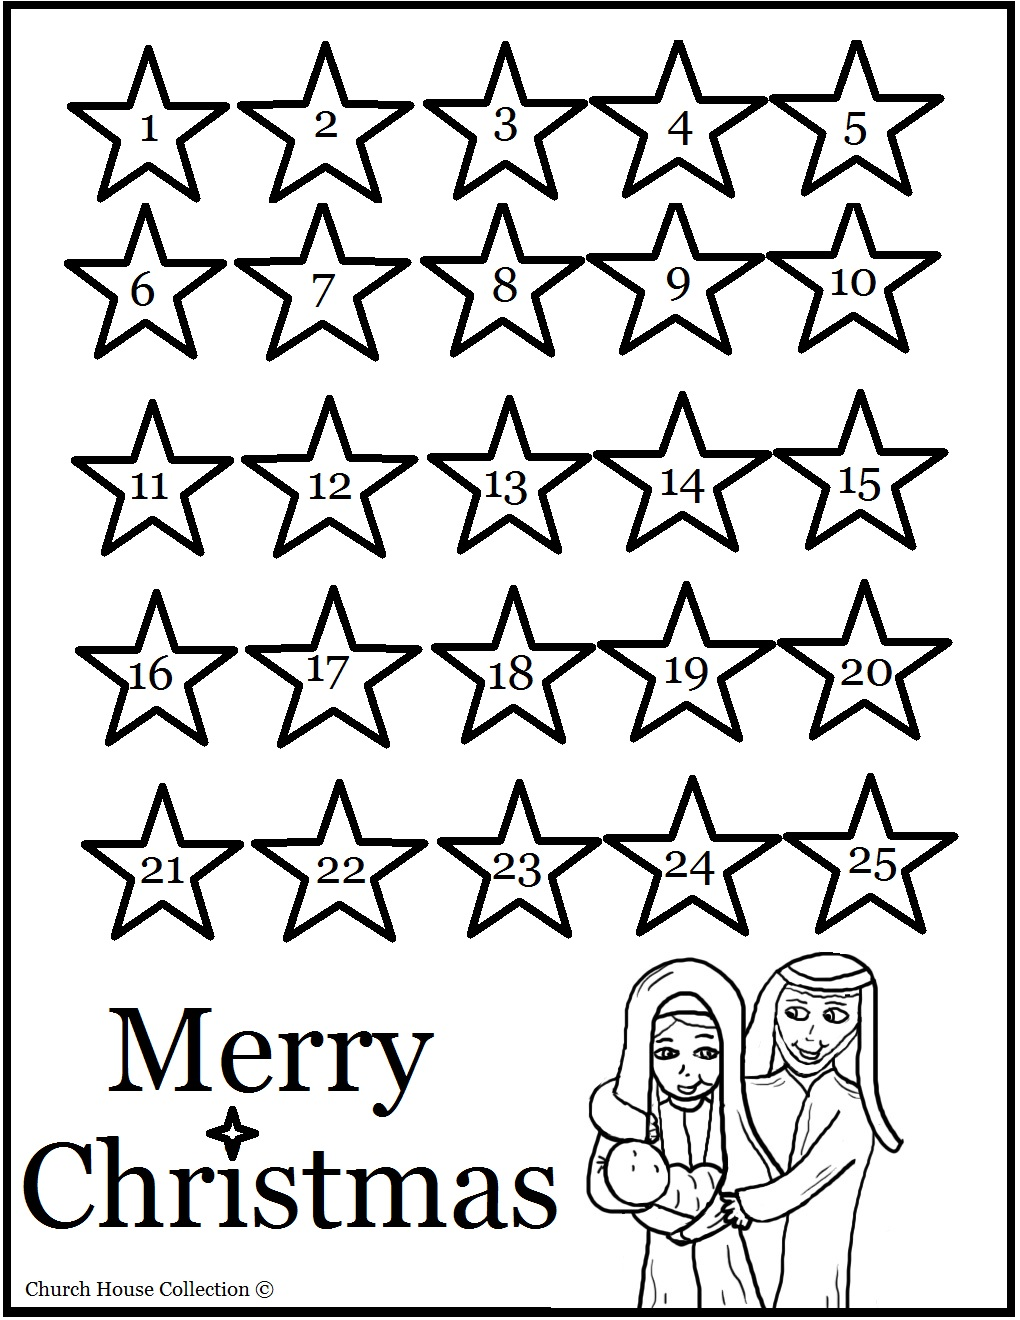 Free Christmas Advent Calendar Coloring Pages with Stars printable